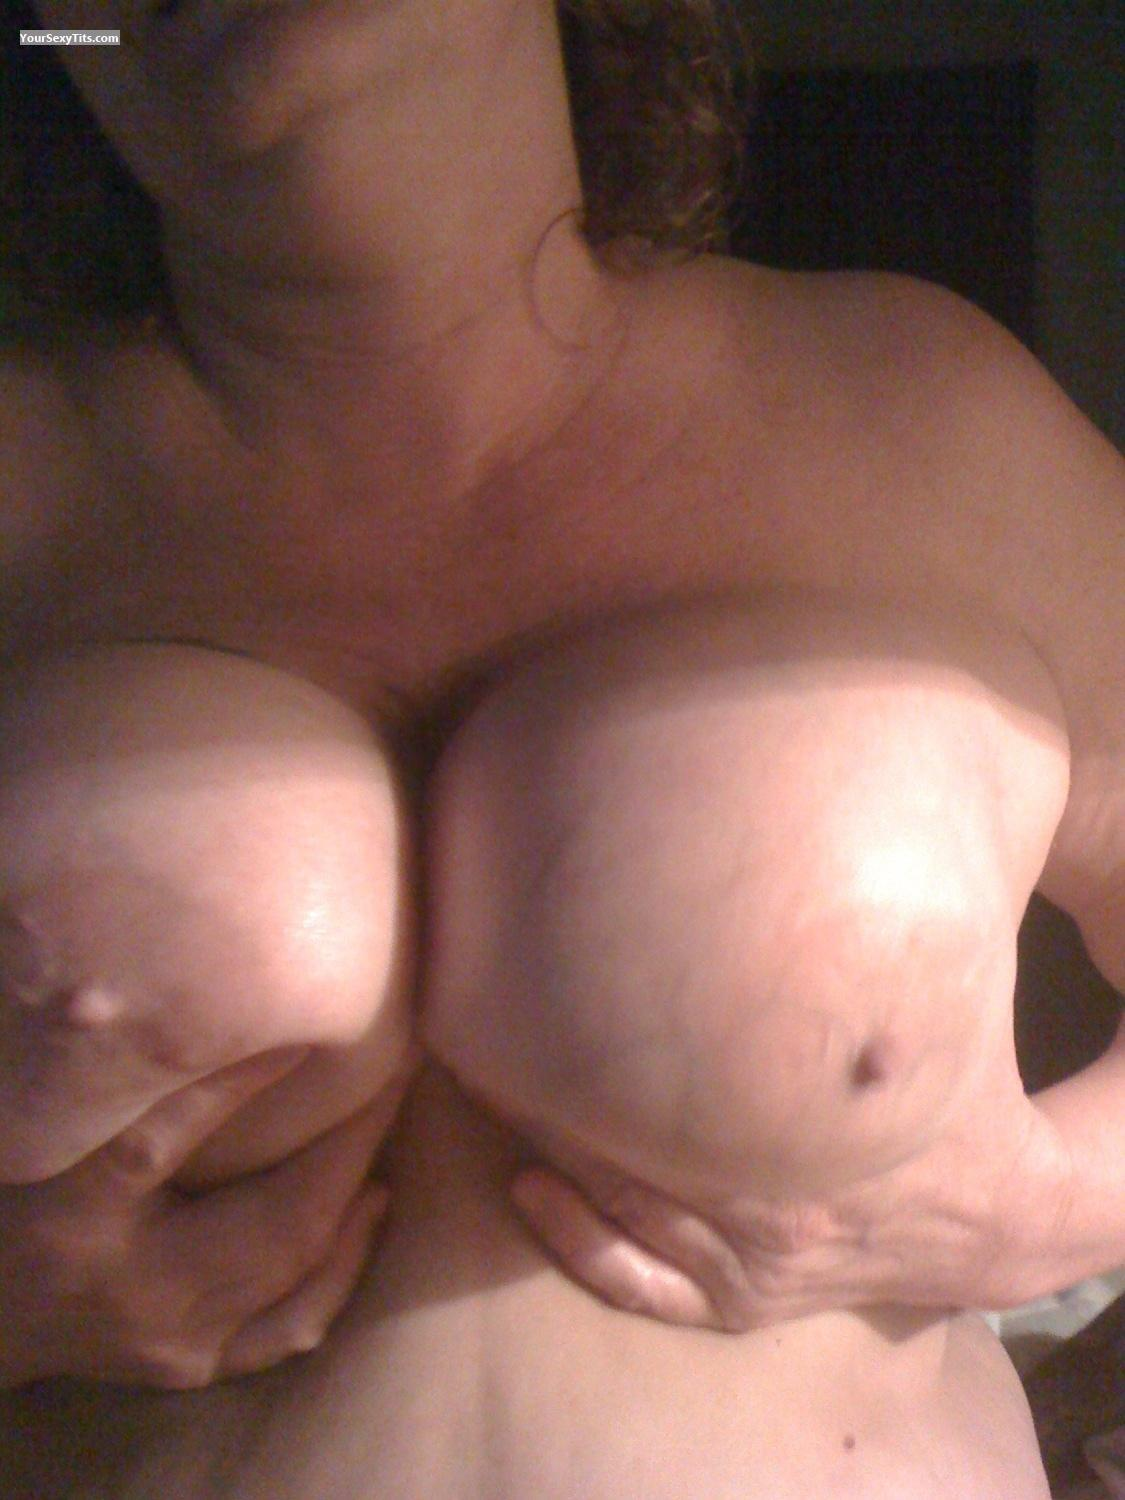 Tit Flash: Medium Tits By IPhone - Bigtittys from United States